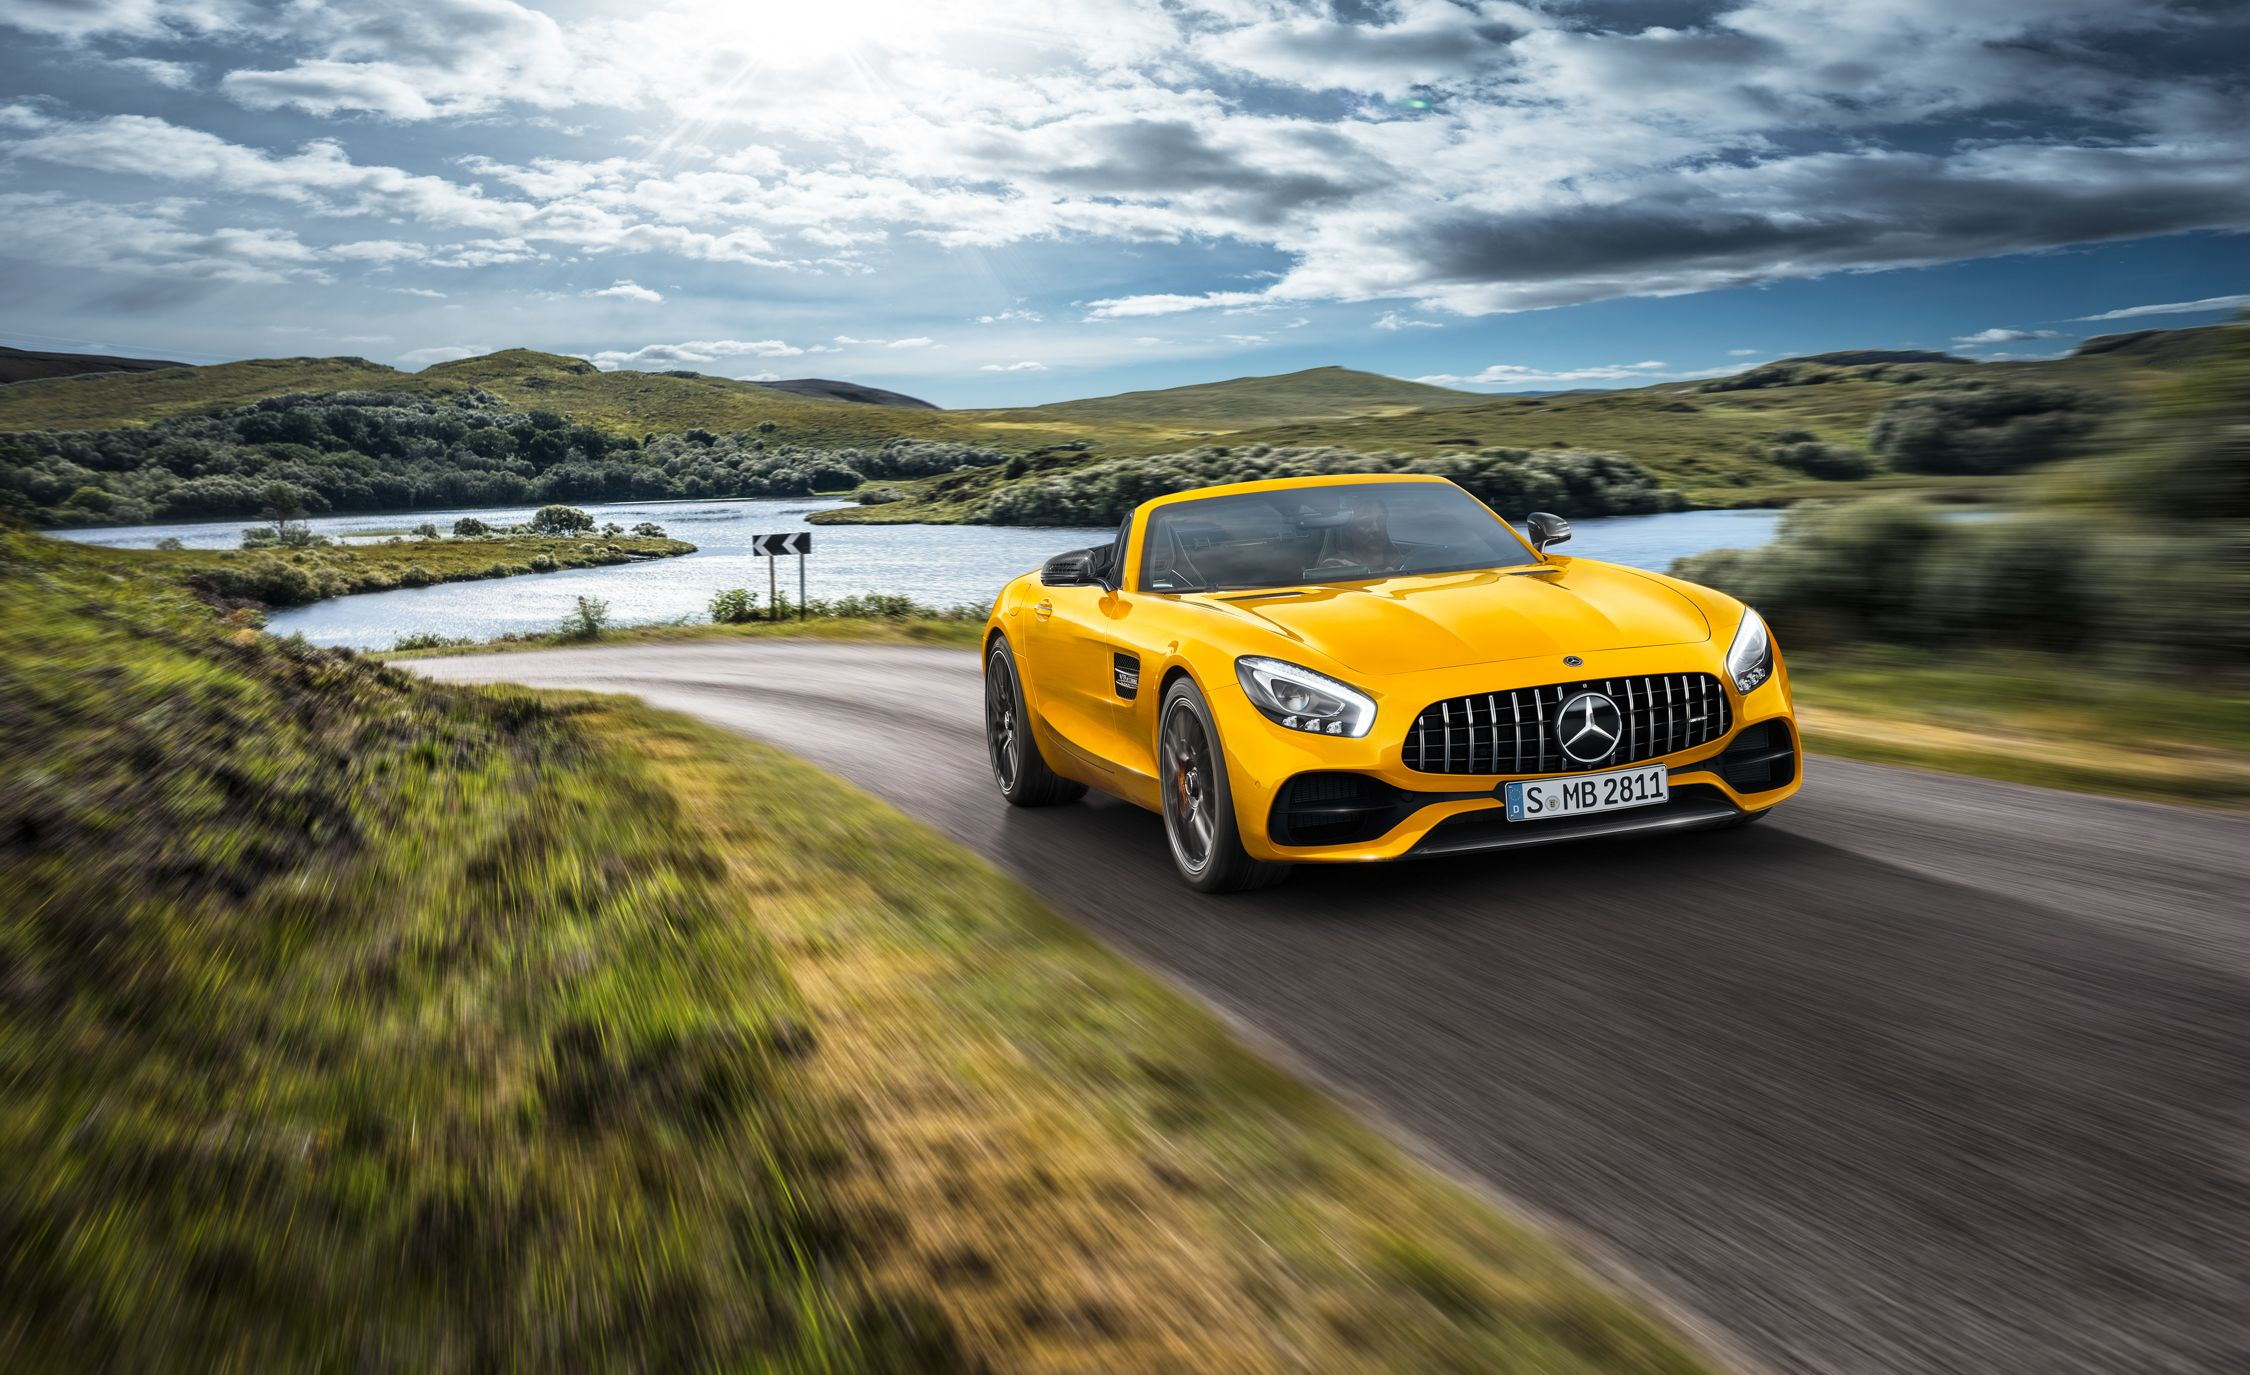 2019 Mercedes-AMG GT S Roadster: Bridging the Gap